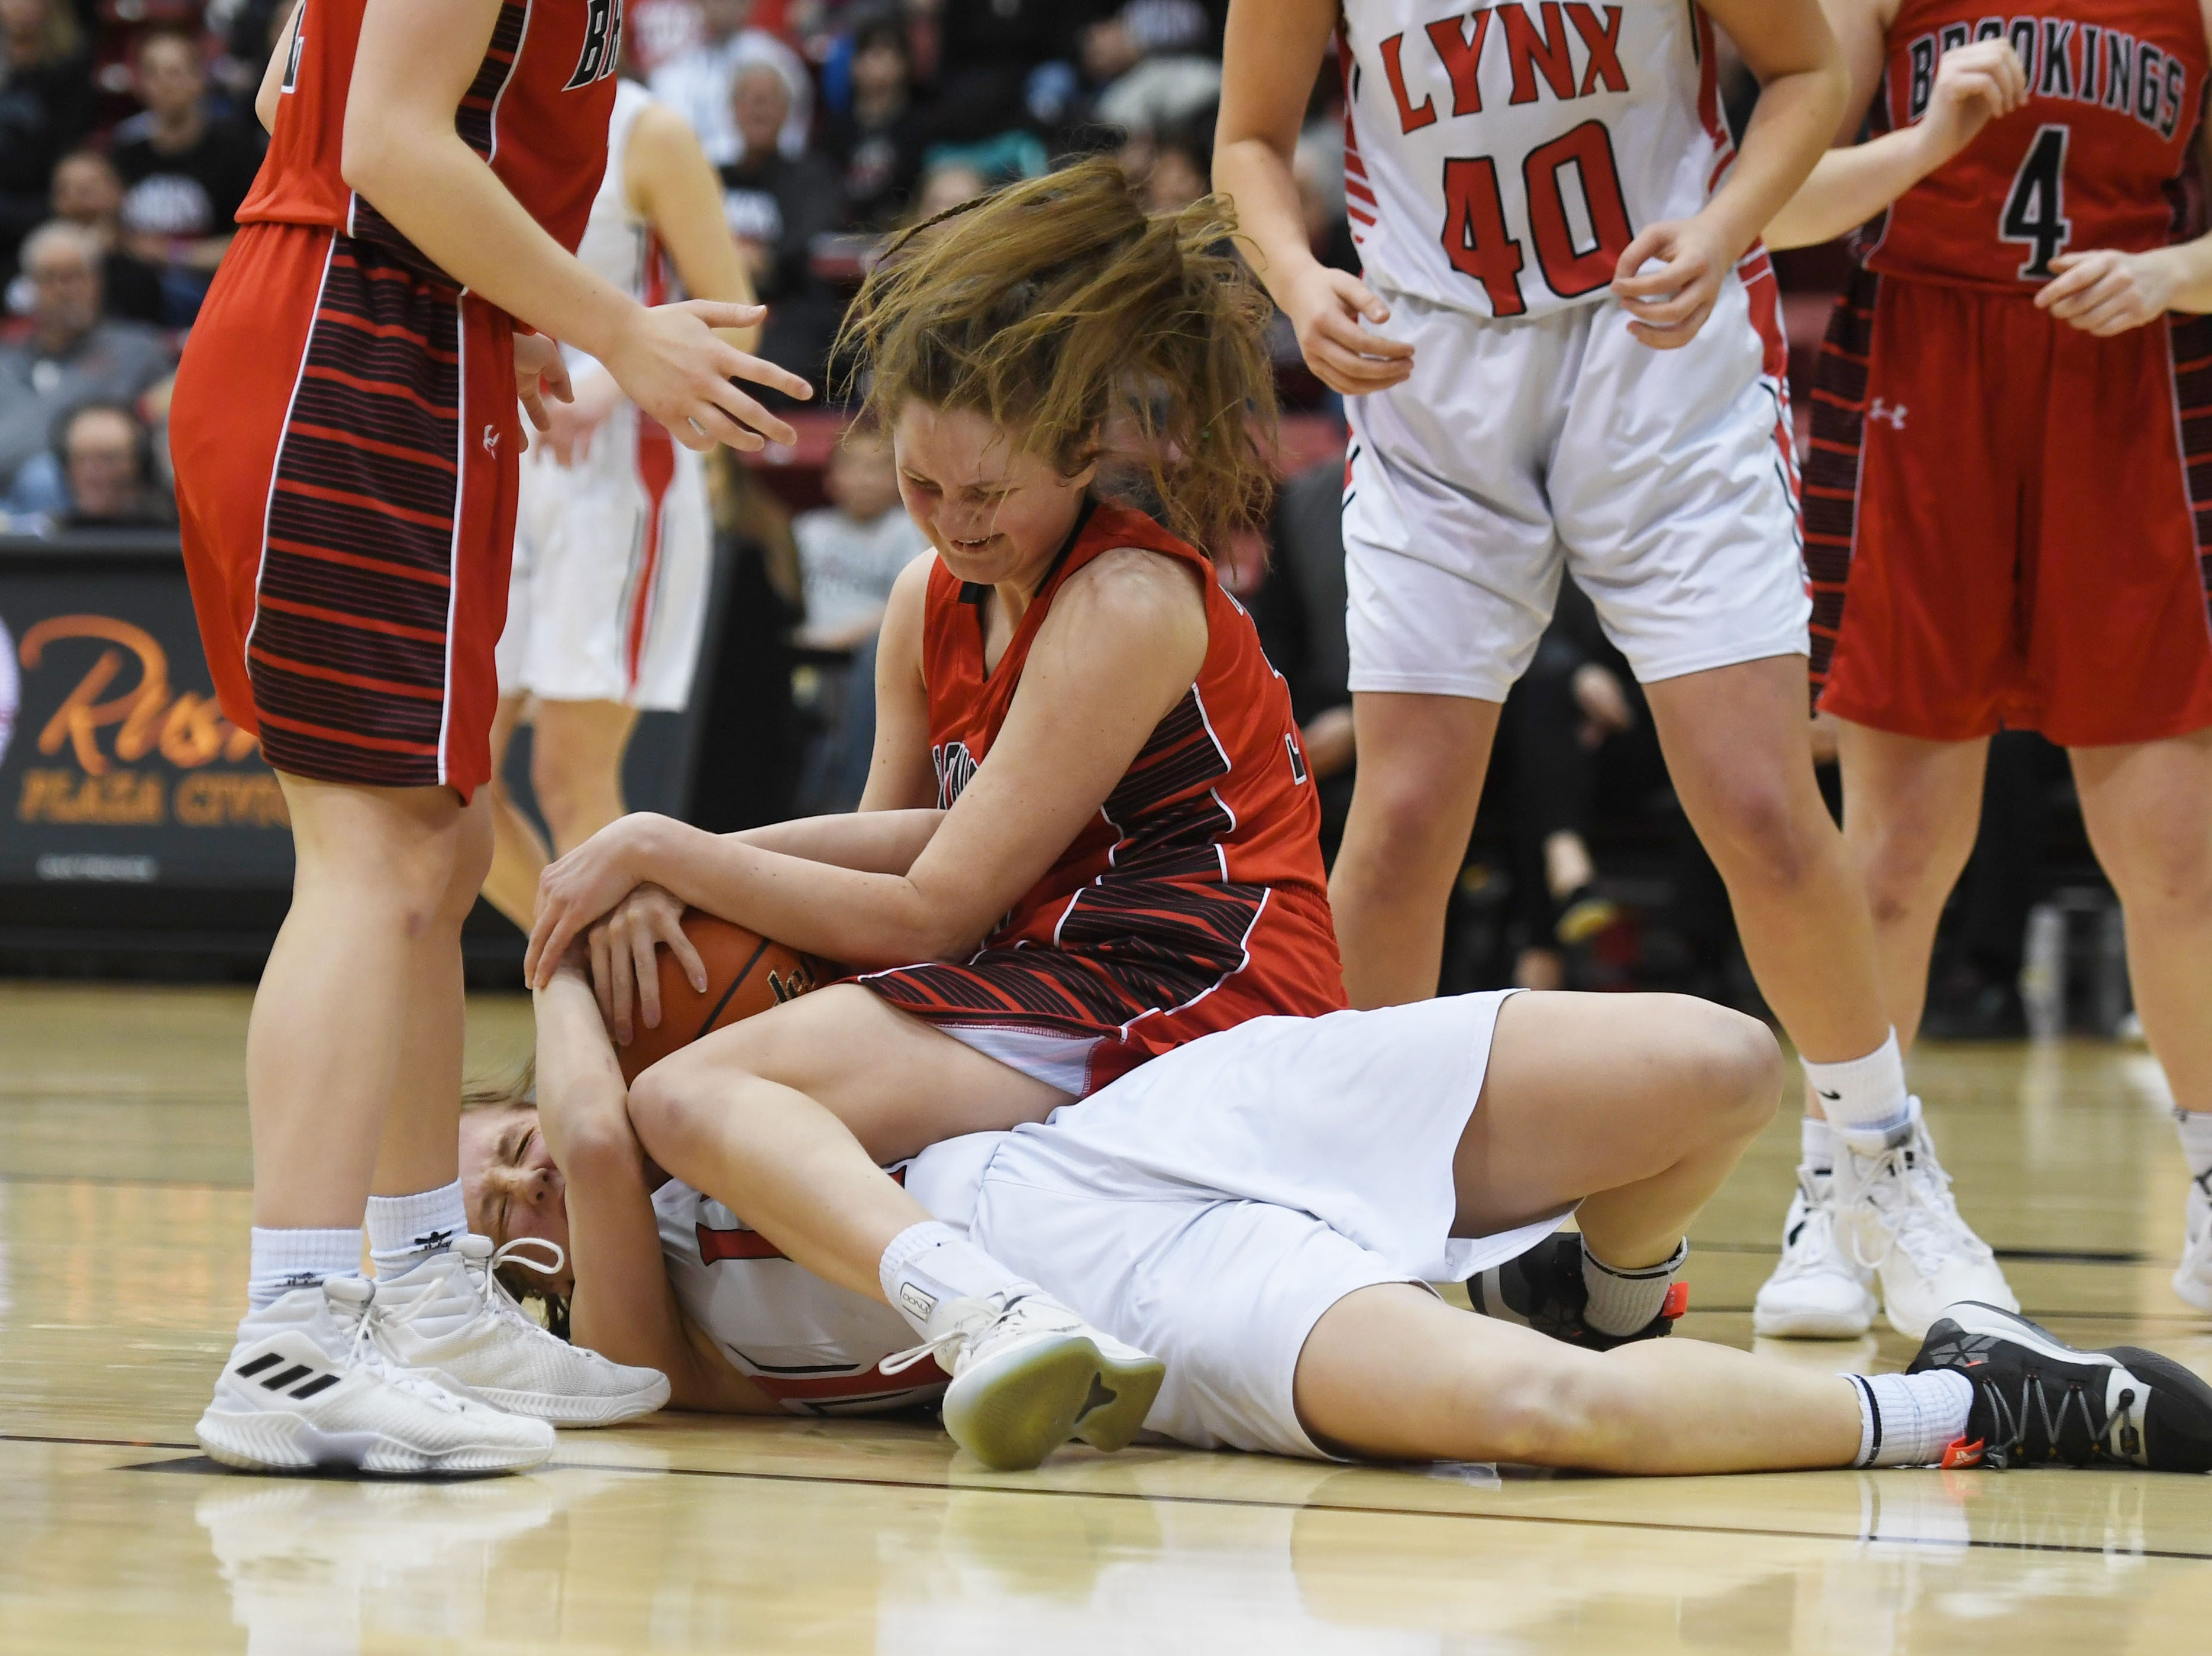 Brookings' Michaela Jewett and Brandon Valley's Ashley Wells attempt to gain control of the ball in the Class AA quarterfinals Thursday, March 14, in Rapid City.